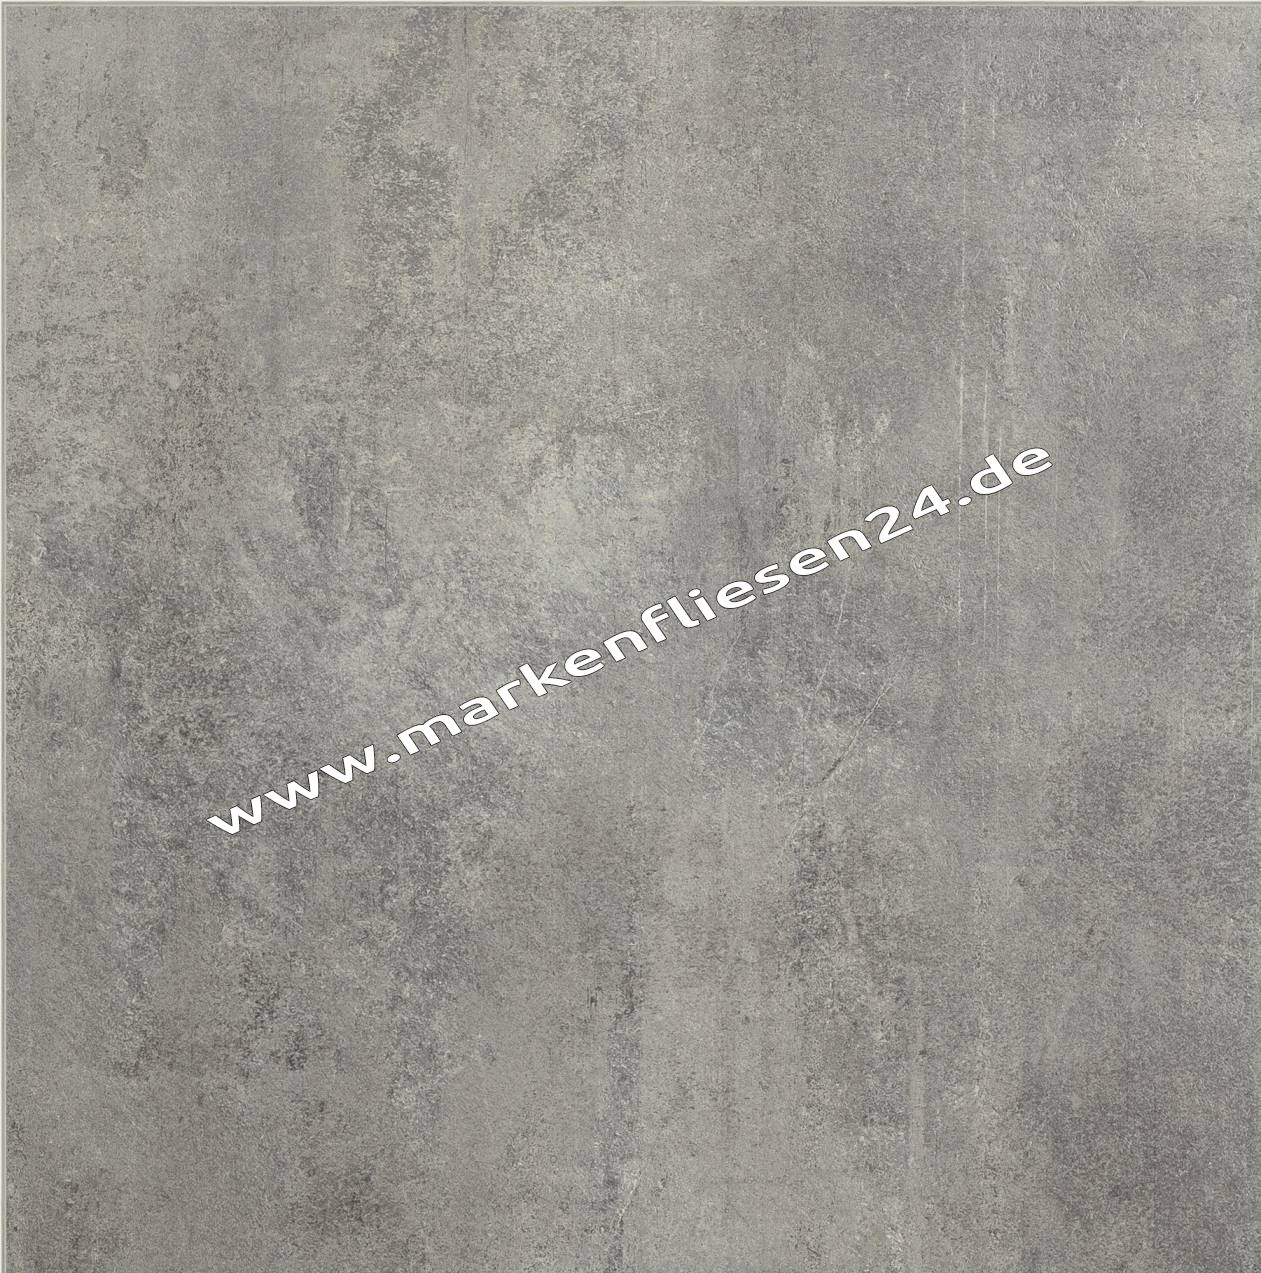 Floorgres rawtech dust naturale rektifiziert 80x80 cm art 752191 fliesen outlet - Fliesen outlet ...